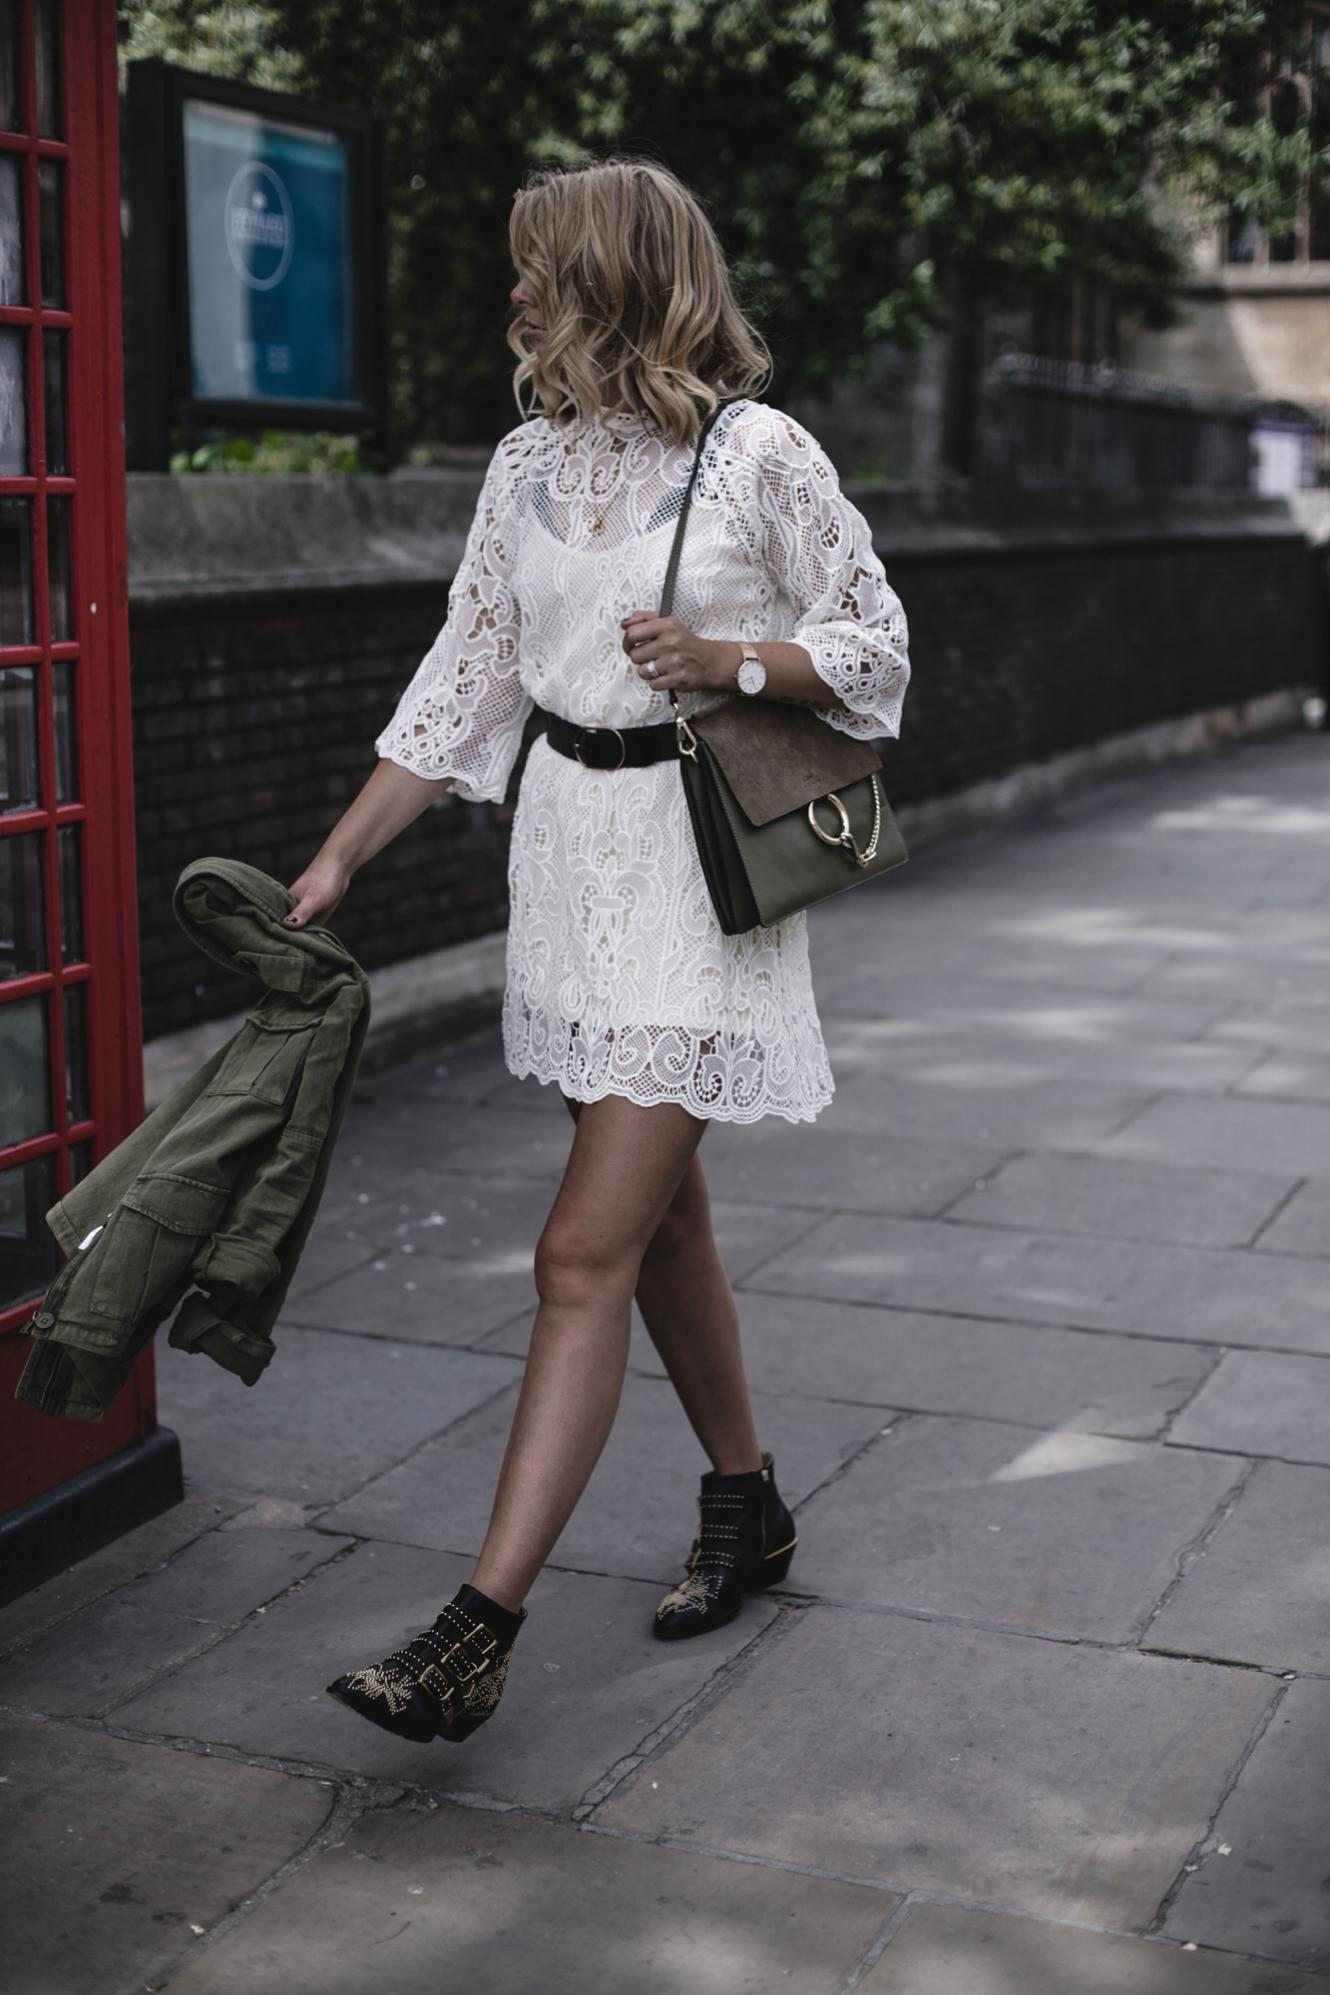 EJ Style | Cream lace dress, black waist belt, khaki jacket, Chloe Faye bag, Chloe Susanna boots, Summer outfit